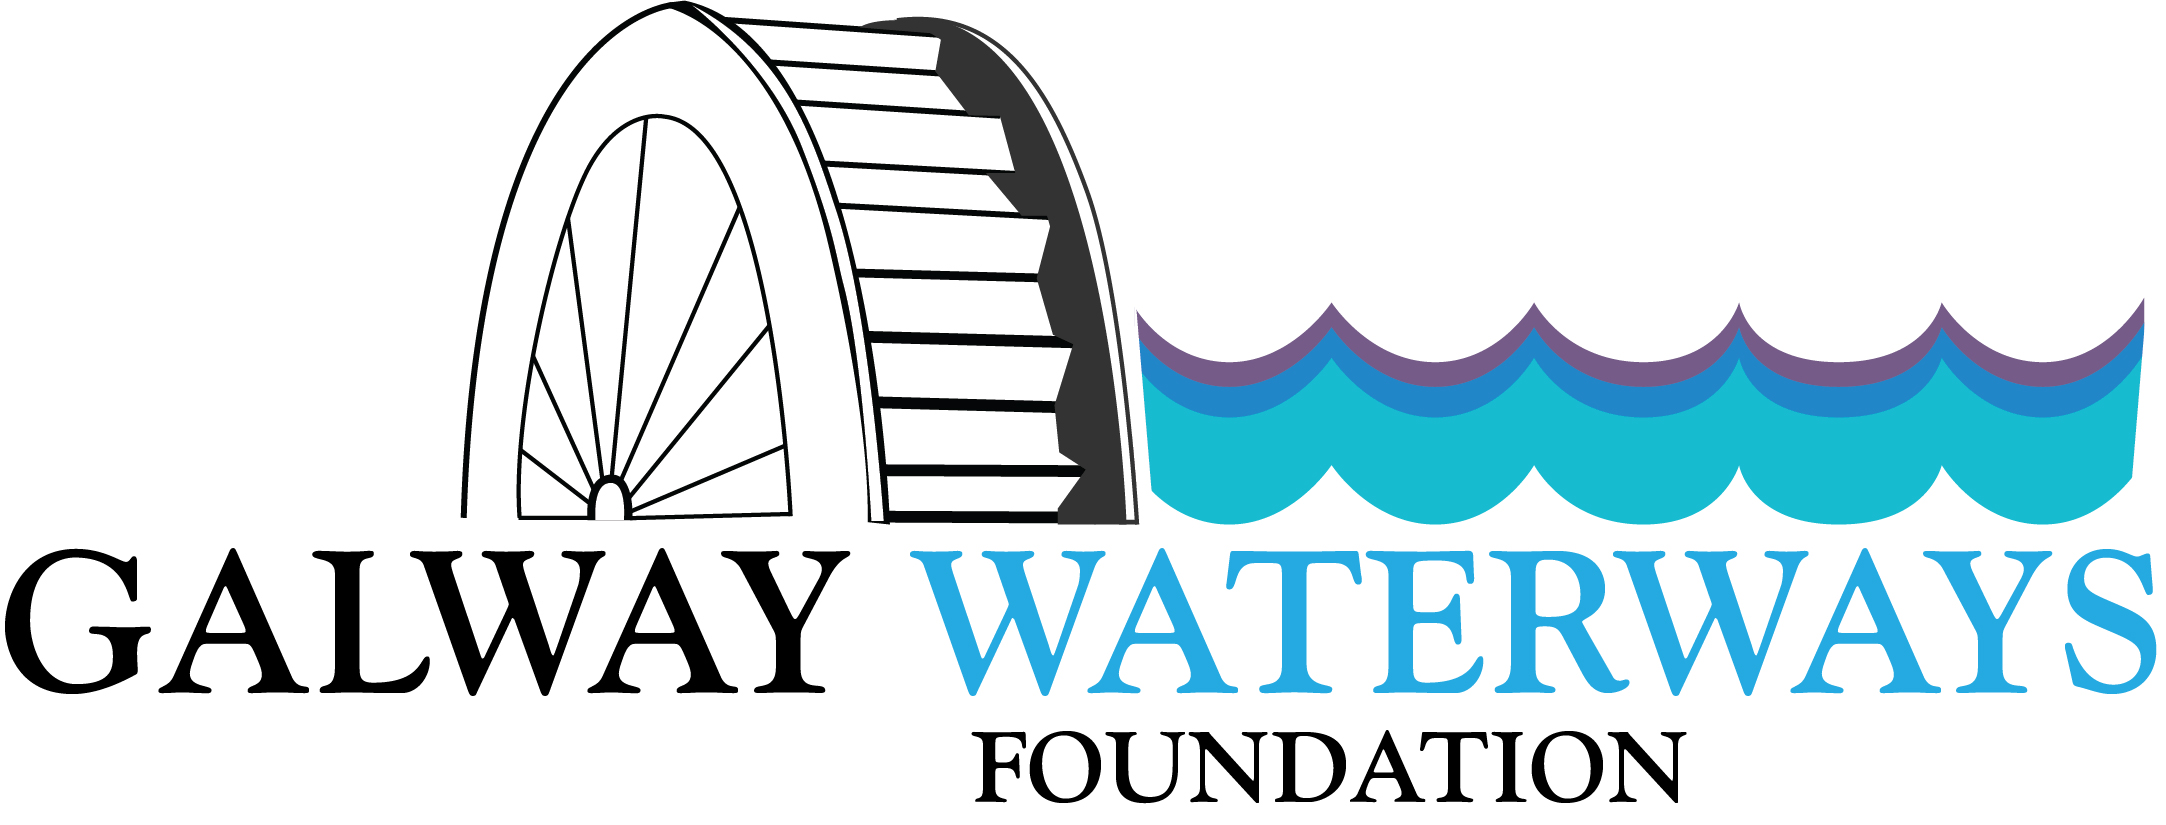 Galway Waterways Foundation